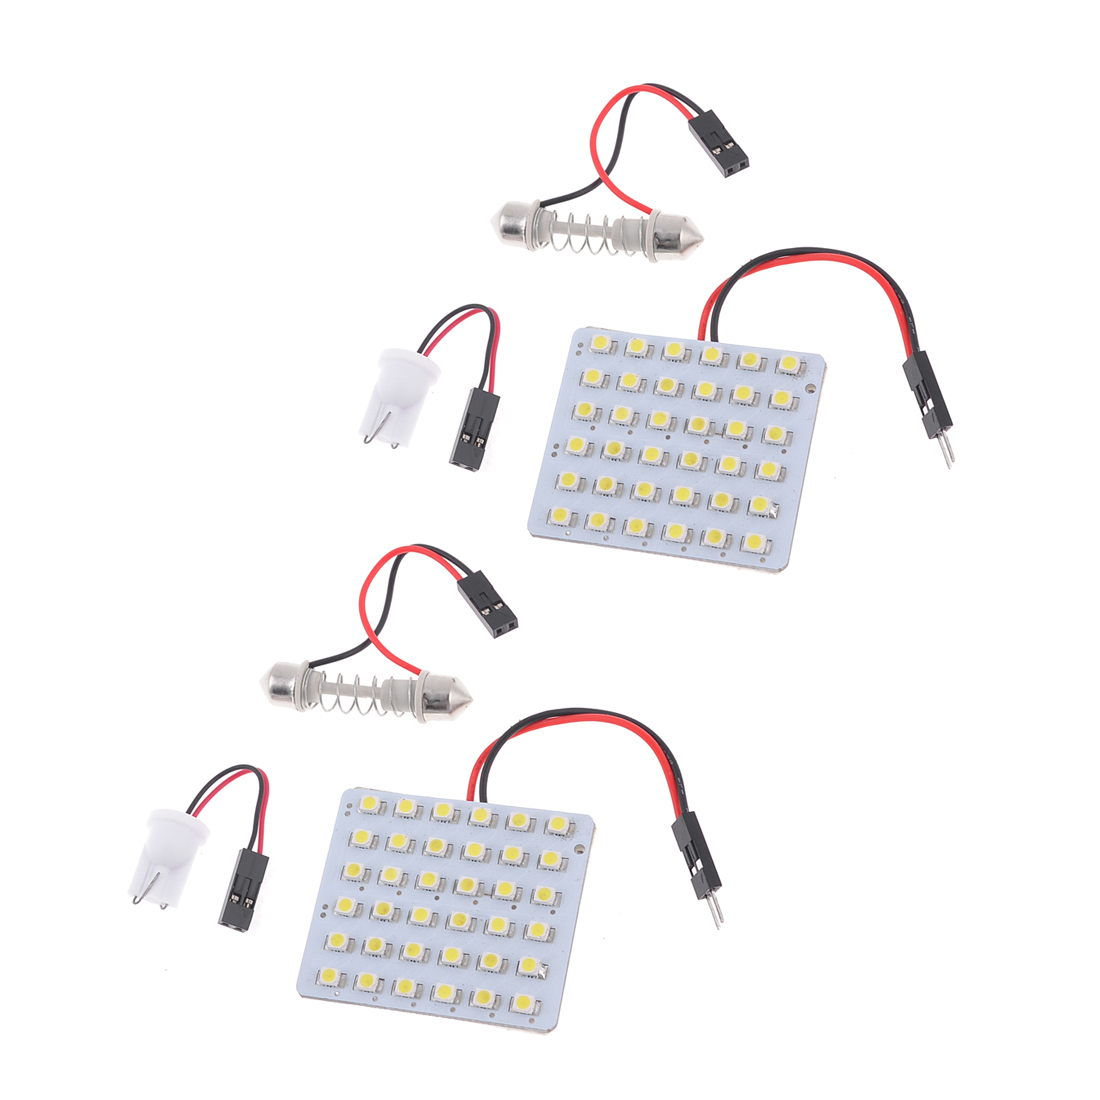 2 x Car T10 Festoon 36-SMD White 1210 3528 LED Panel Interior Dome Map Light